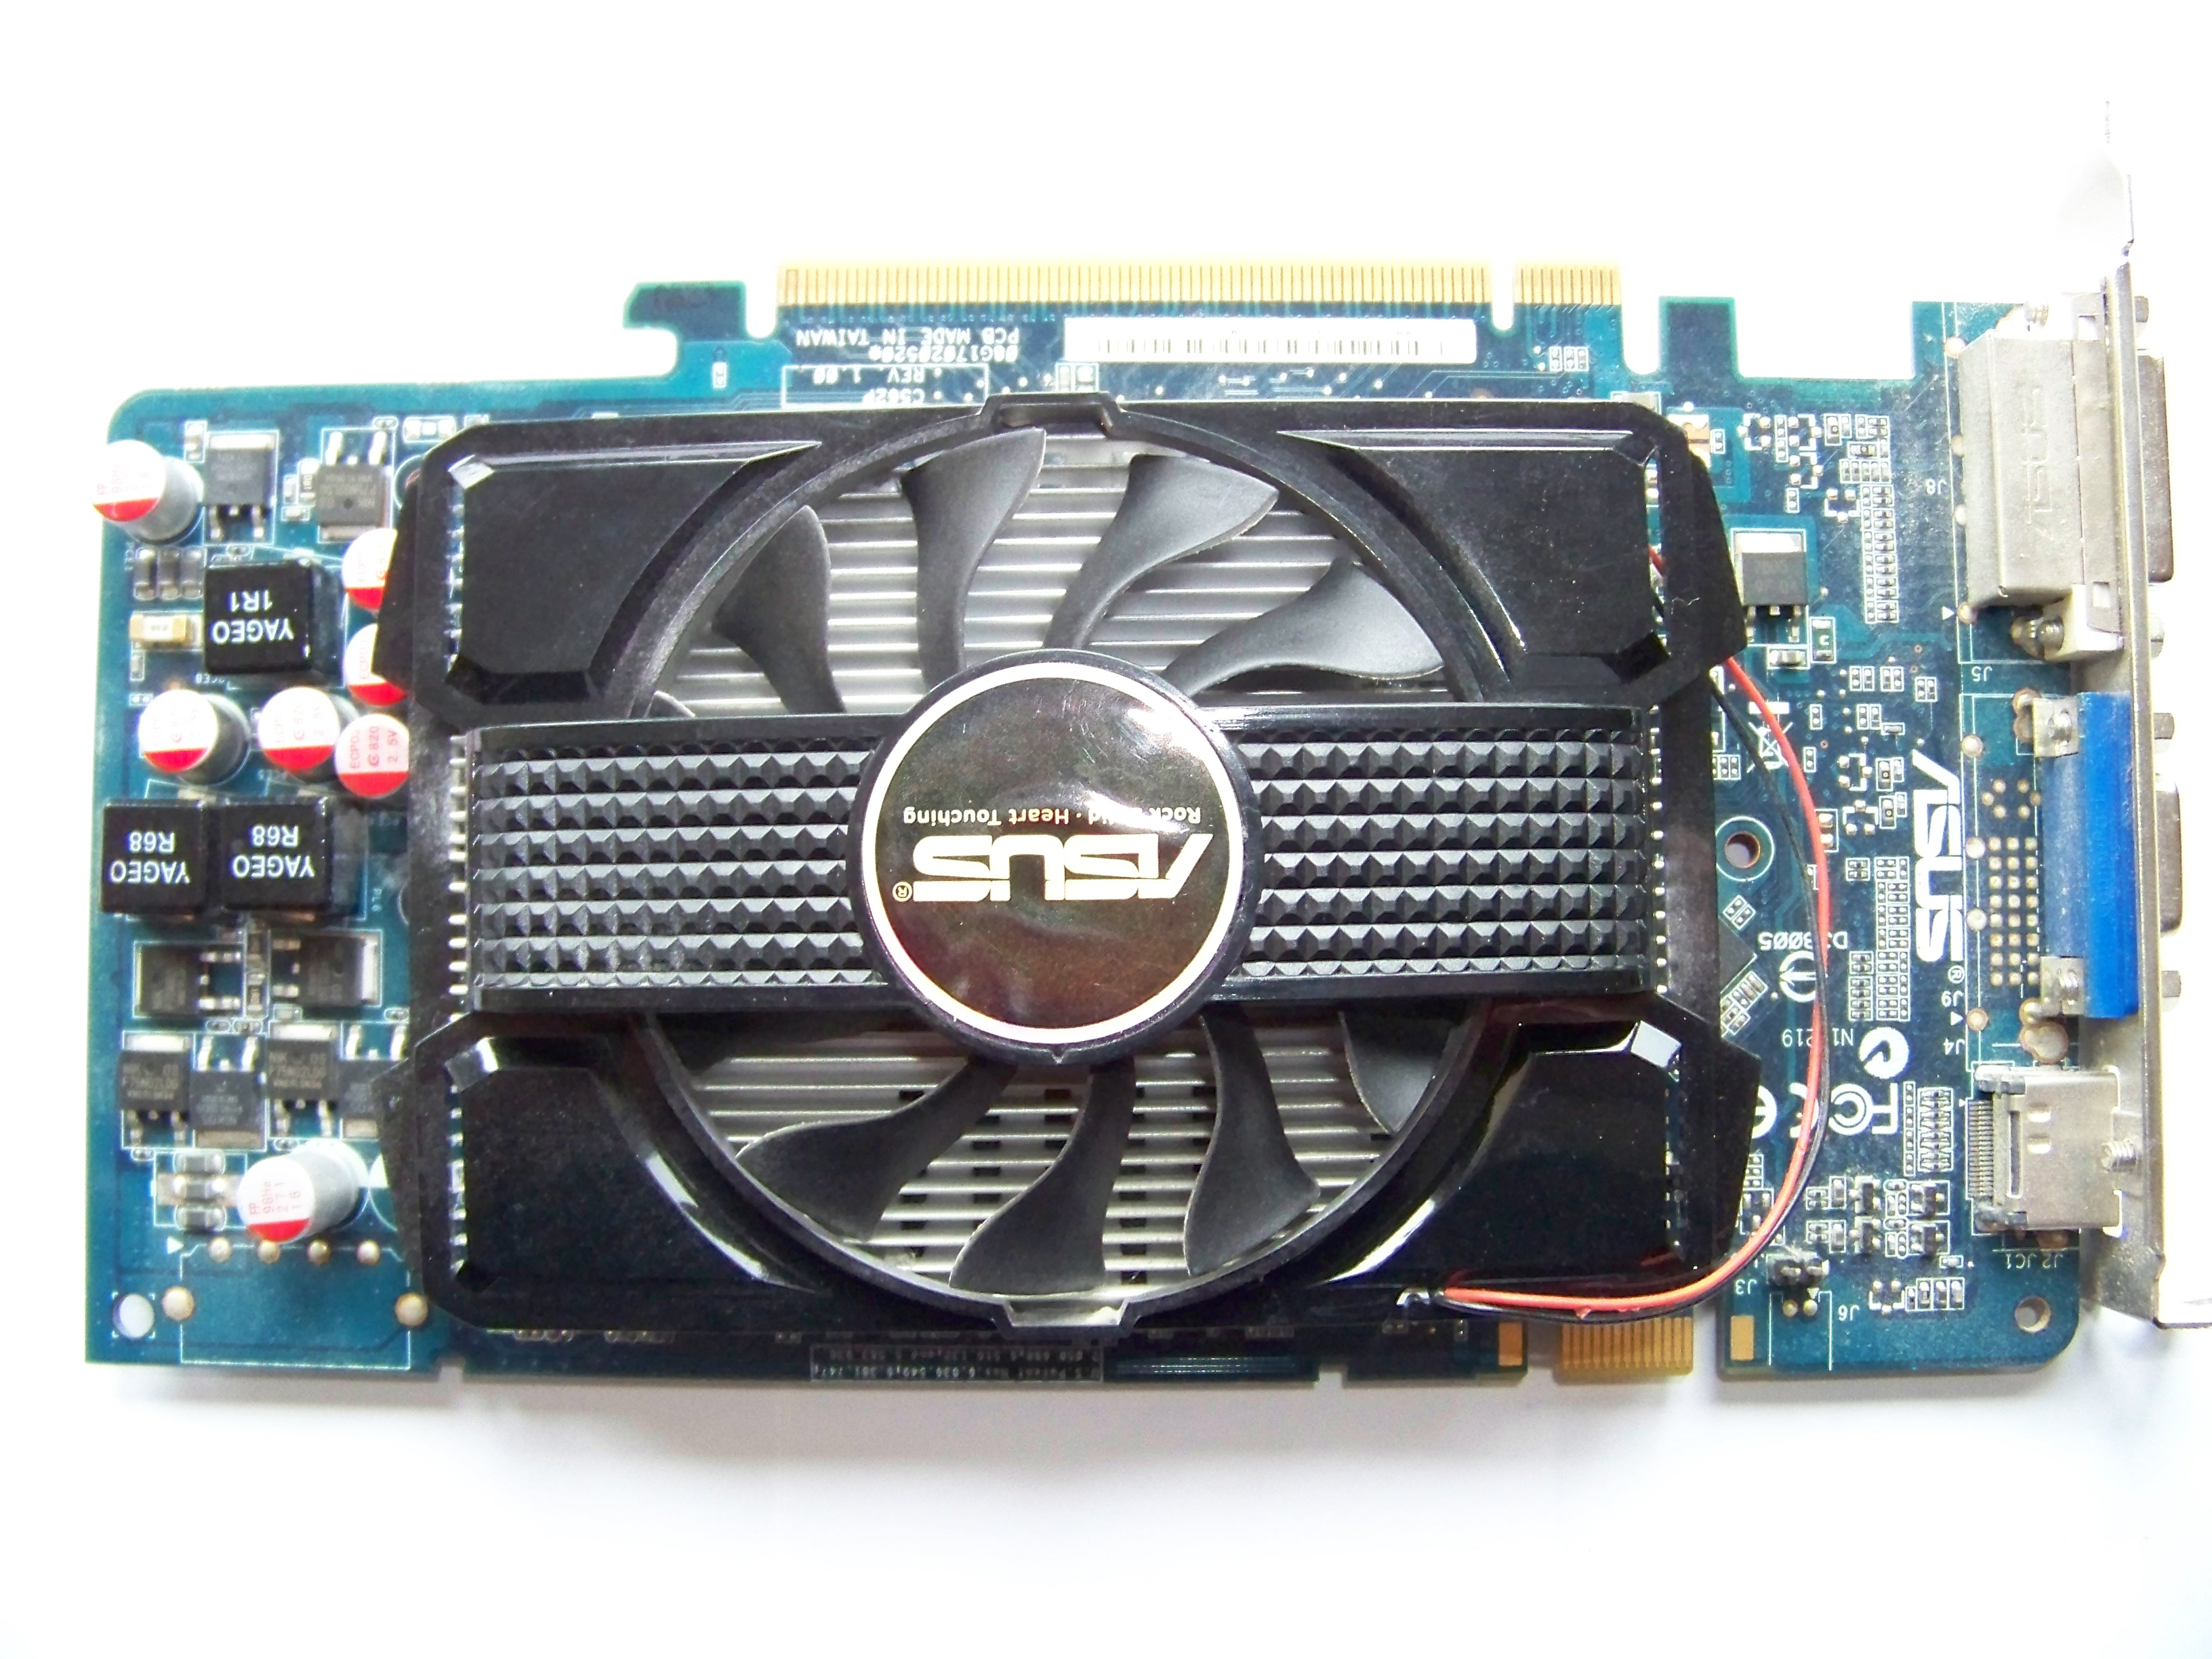 GeForce 9 series